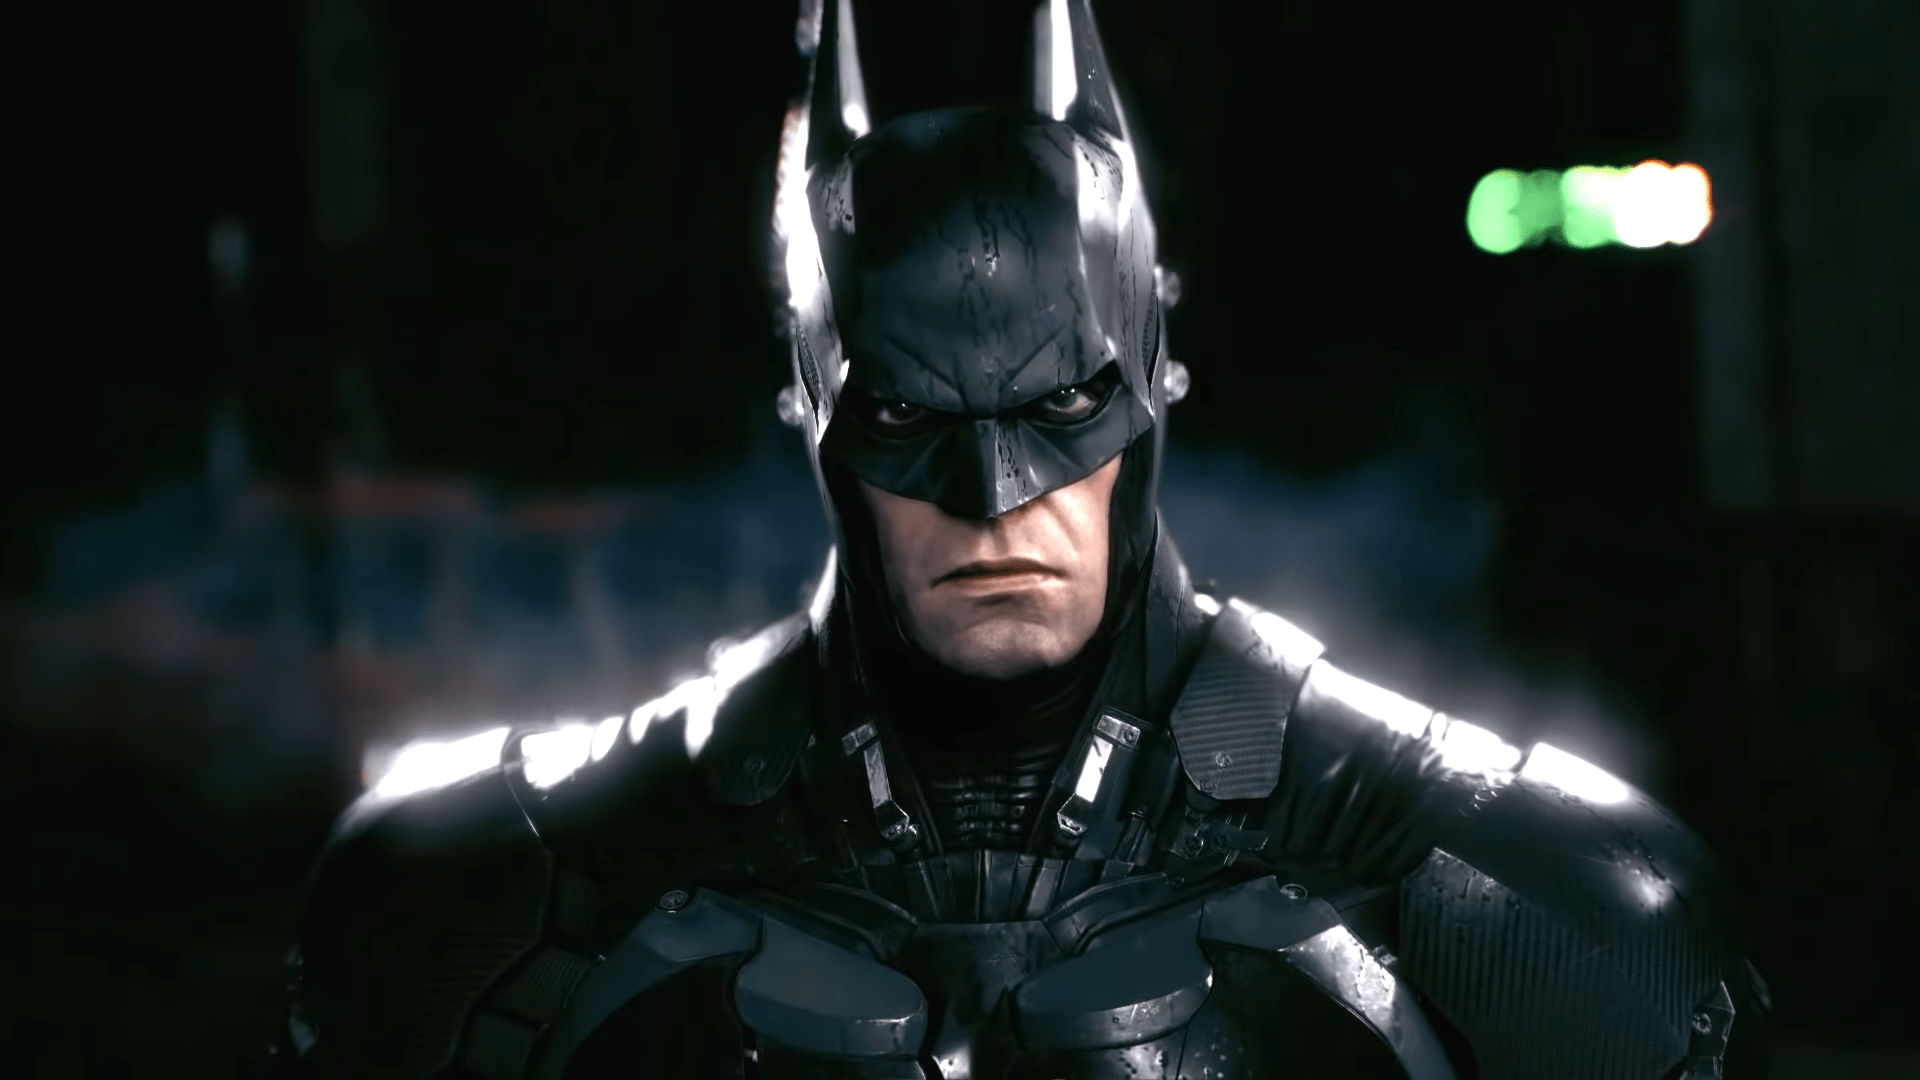 More DC Games Are On The Way According To The Domains That Were Just Registered